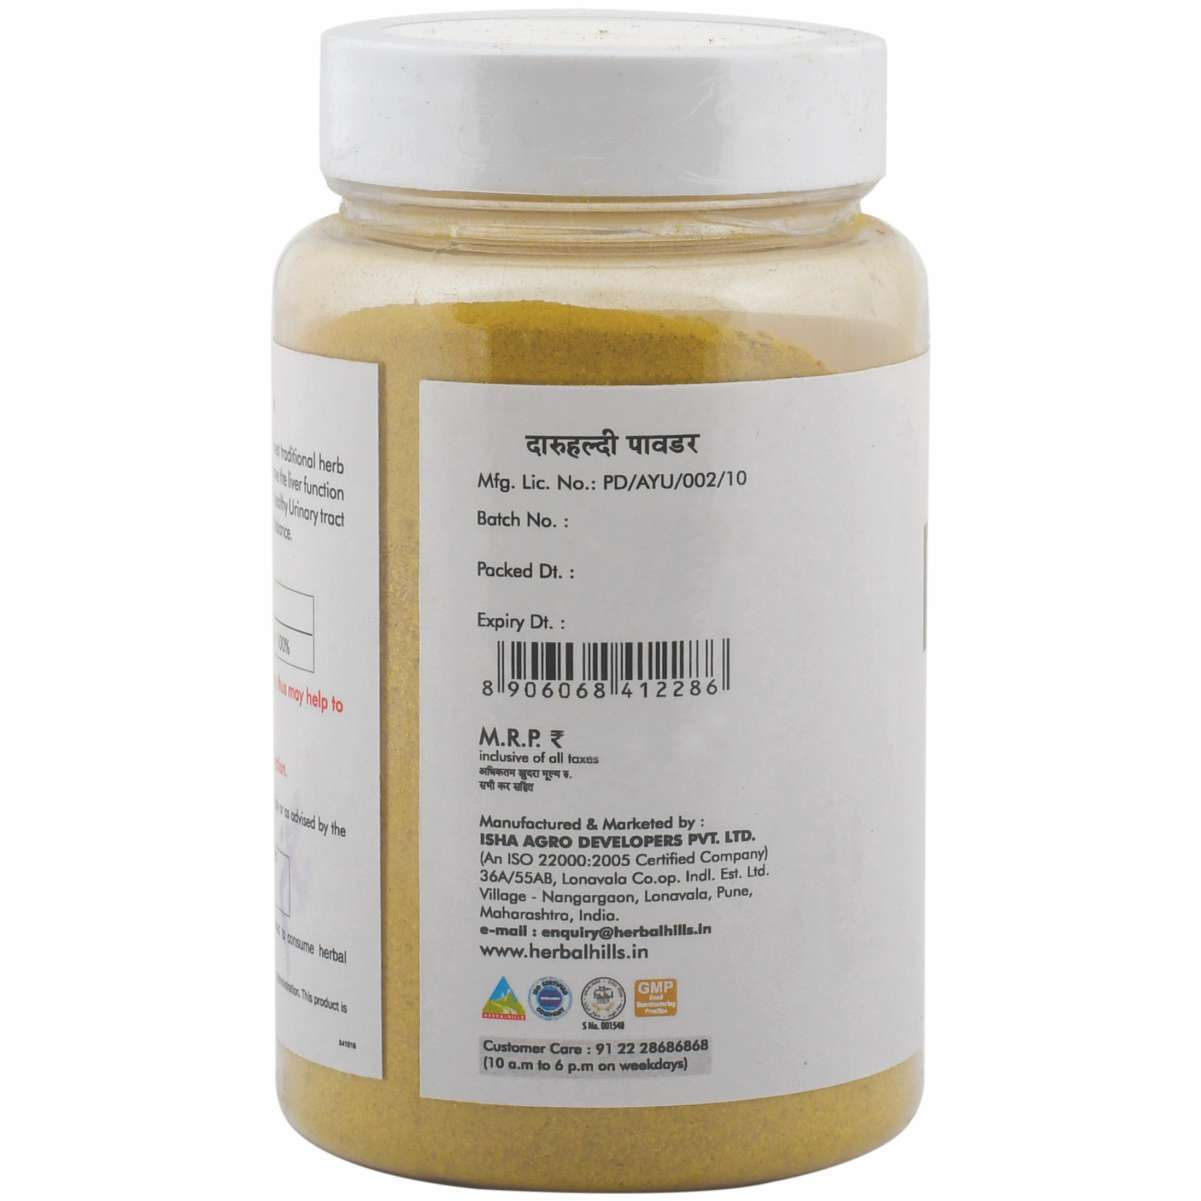 Ayurvedic Daru Haldi Powder 100gm for Healthy Skin & Liver (Pack of 2)